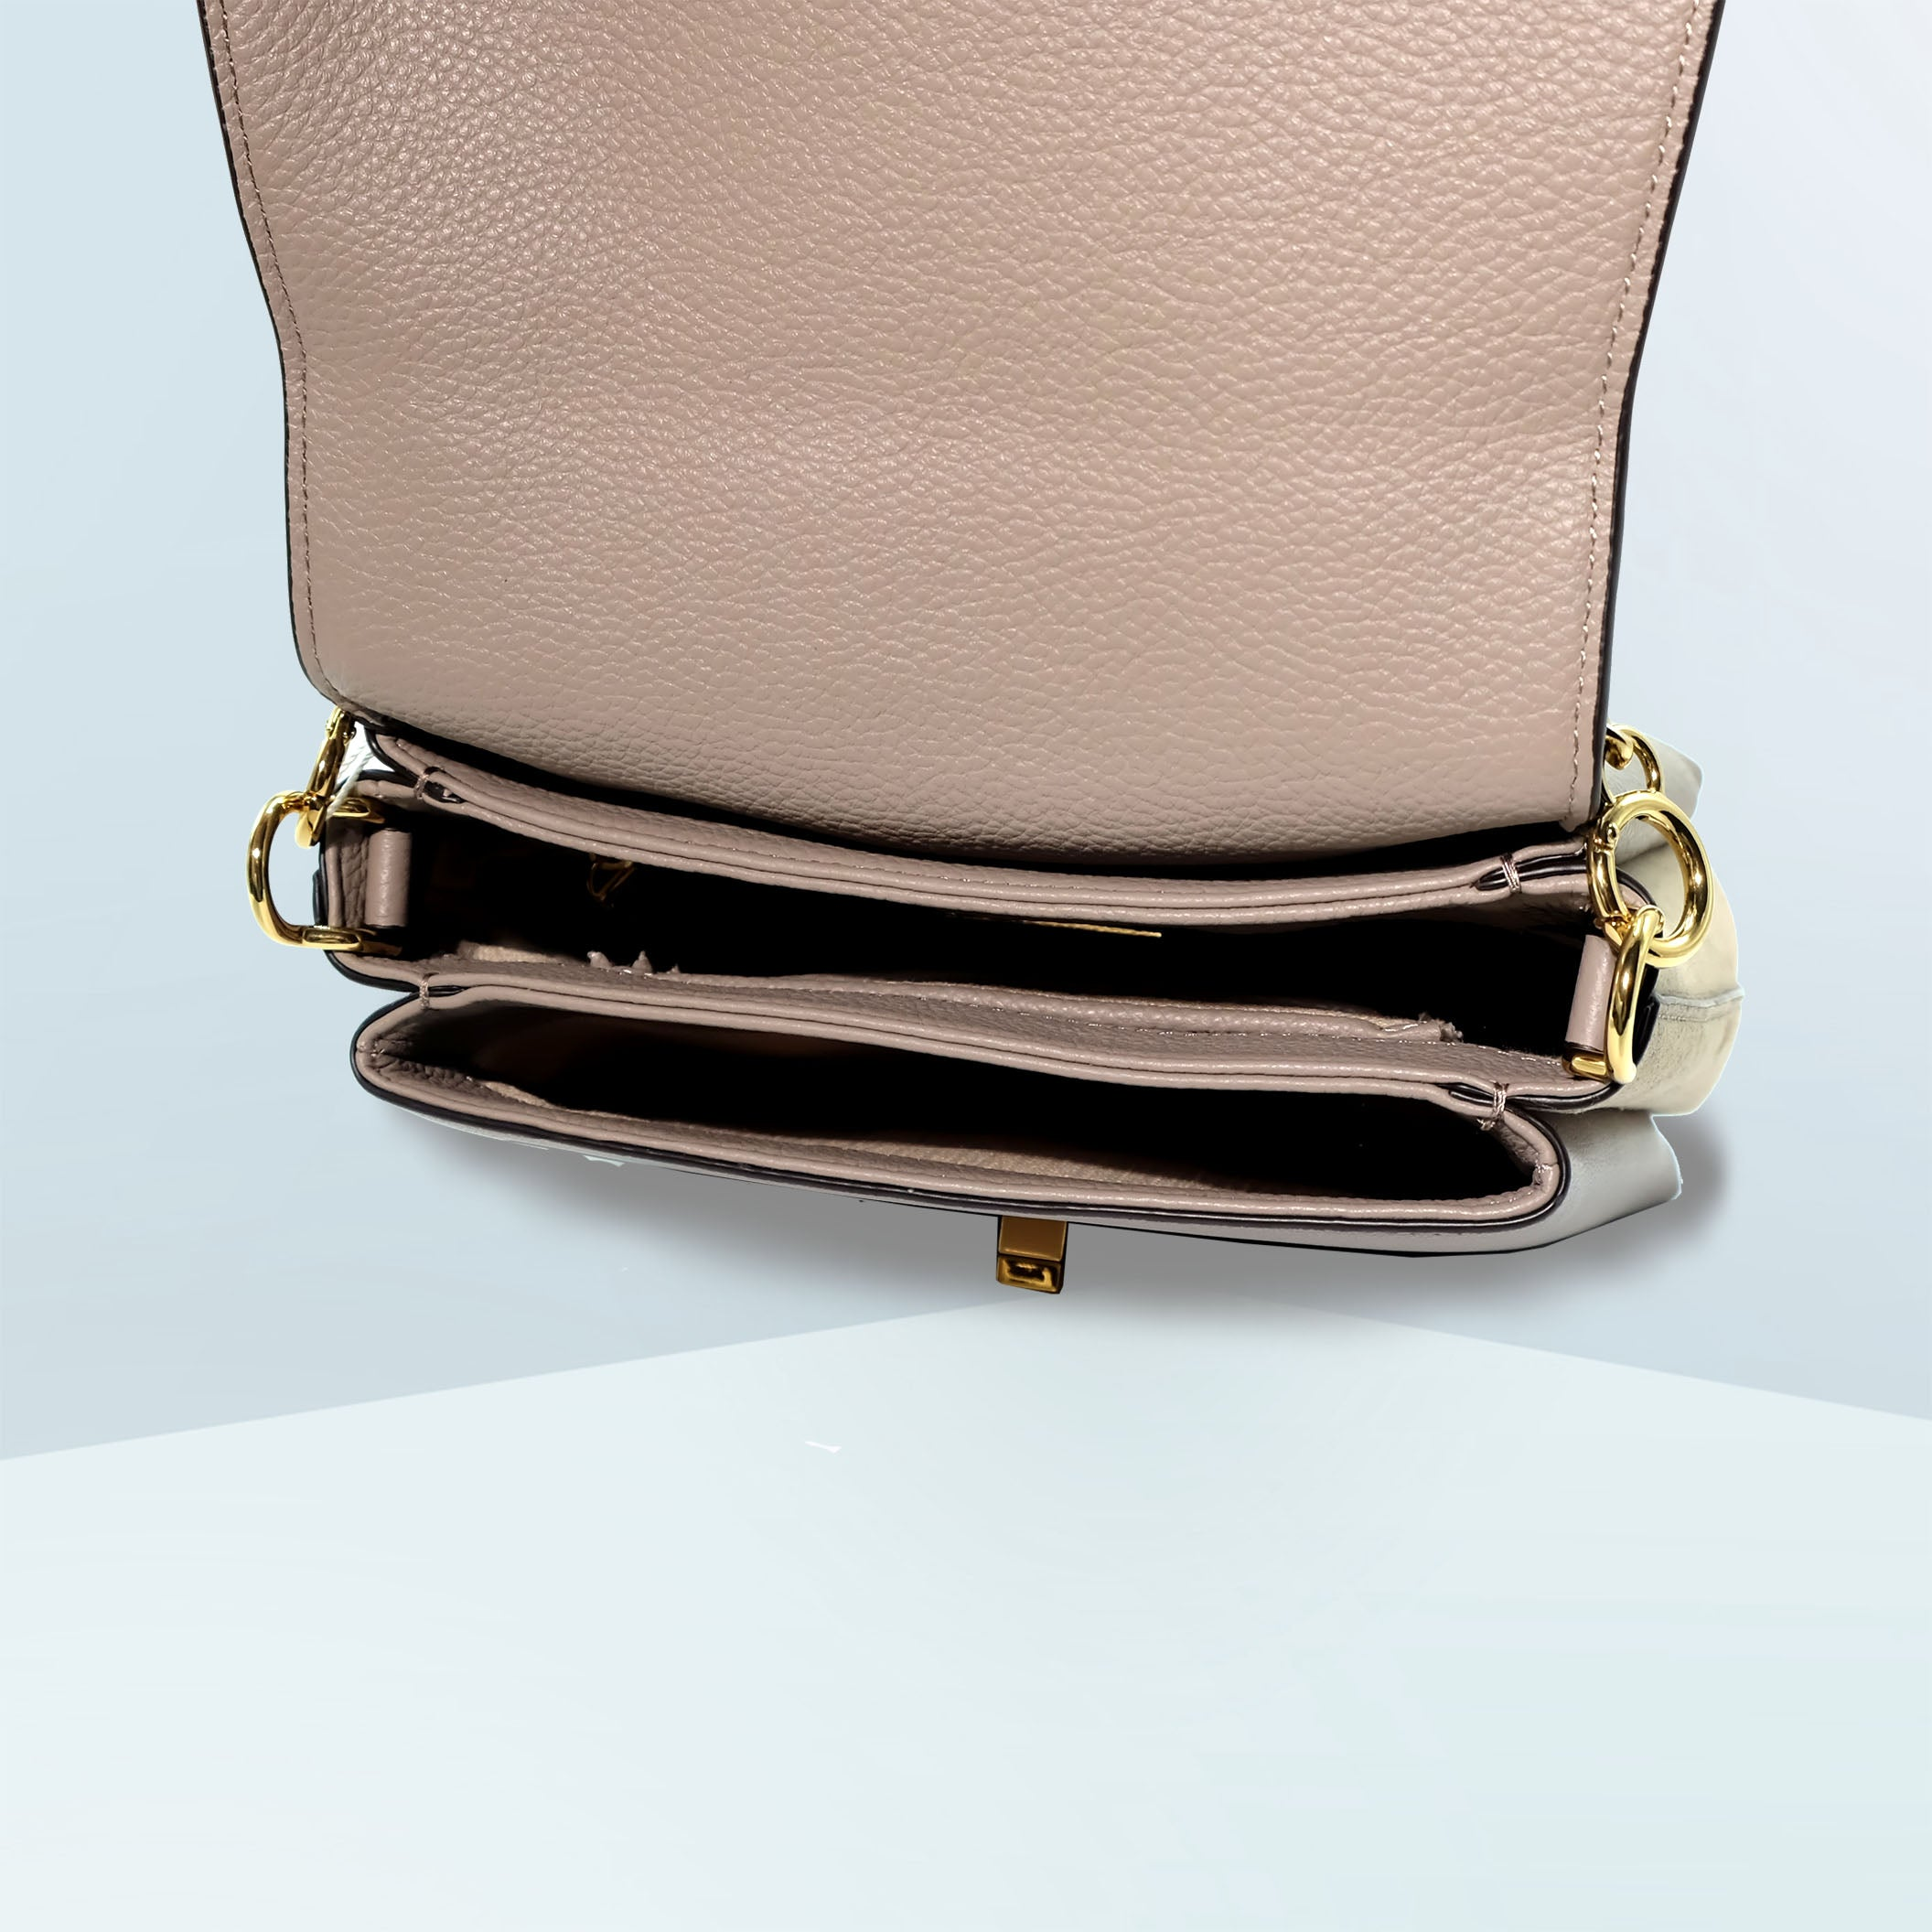 Kira Mixed Material Small Top Handle Bag